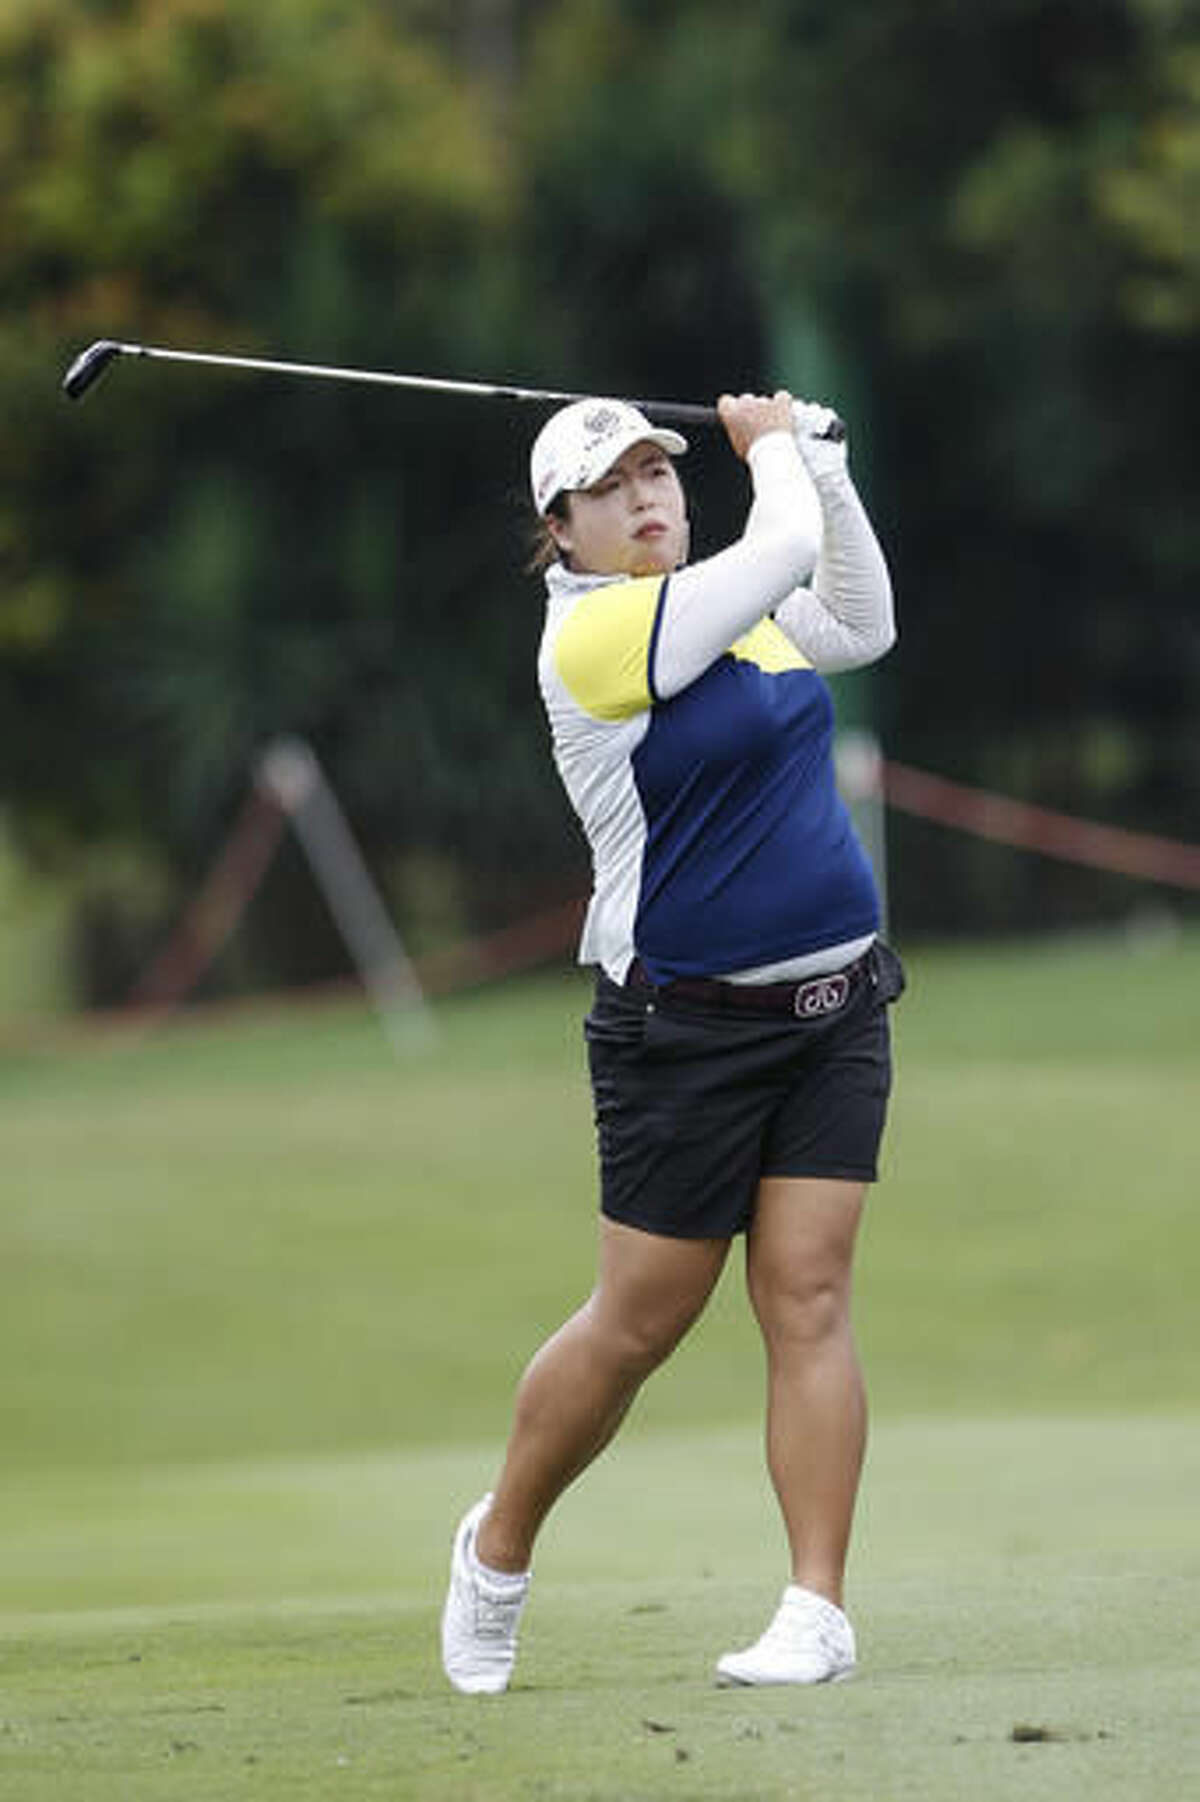 Shanshan Feng of China follows her shot on the 11th hole during the second round of the LPGA golf tournament at Tournament Players Club in Kuala Lumpur, Malaysia, Friday, Oct. 28, 2016. (AP Photo/Joshua Paul)